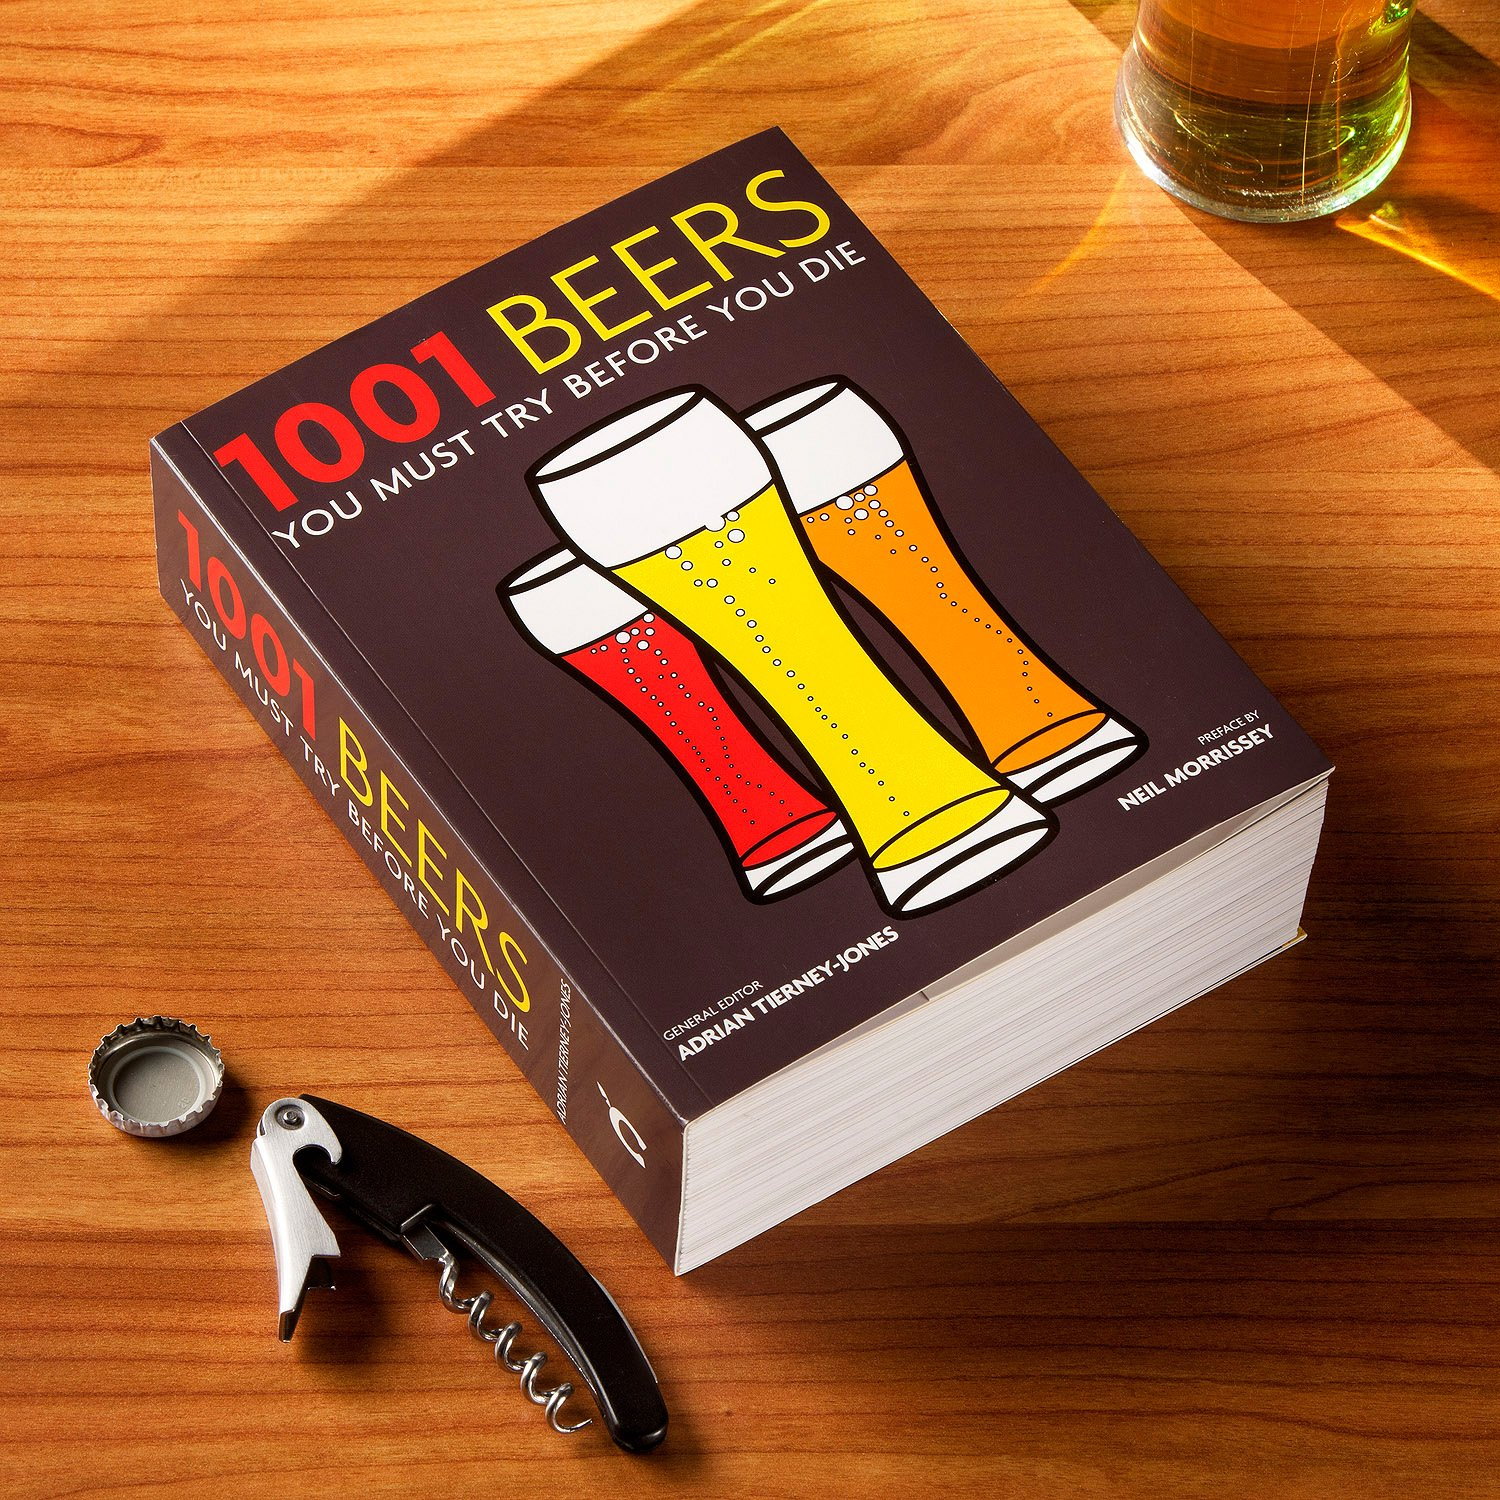 1001 Beers: You Must Try Before You Die: Adrian Tierney Jones:  9781844036820: Amazon.com: Books